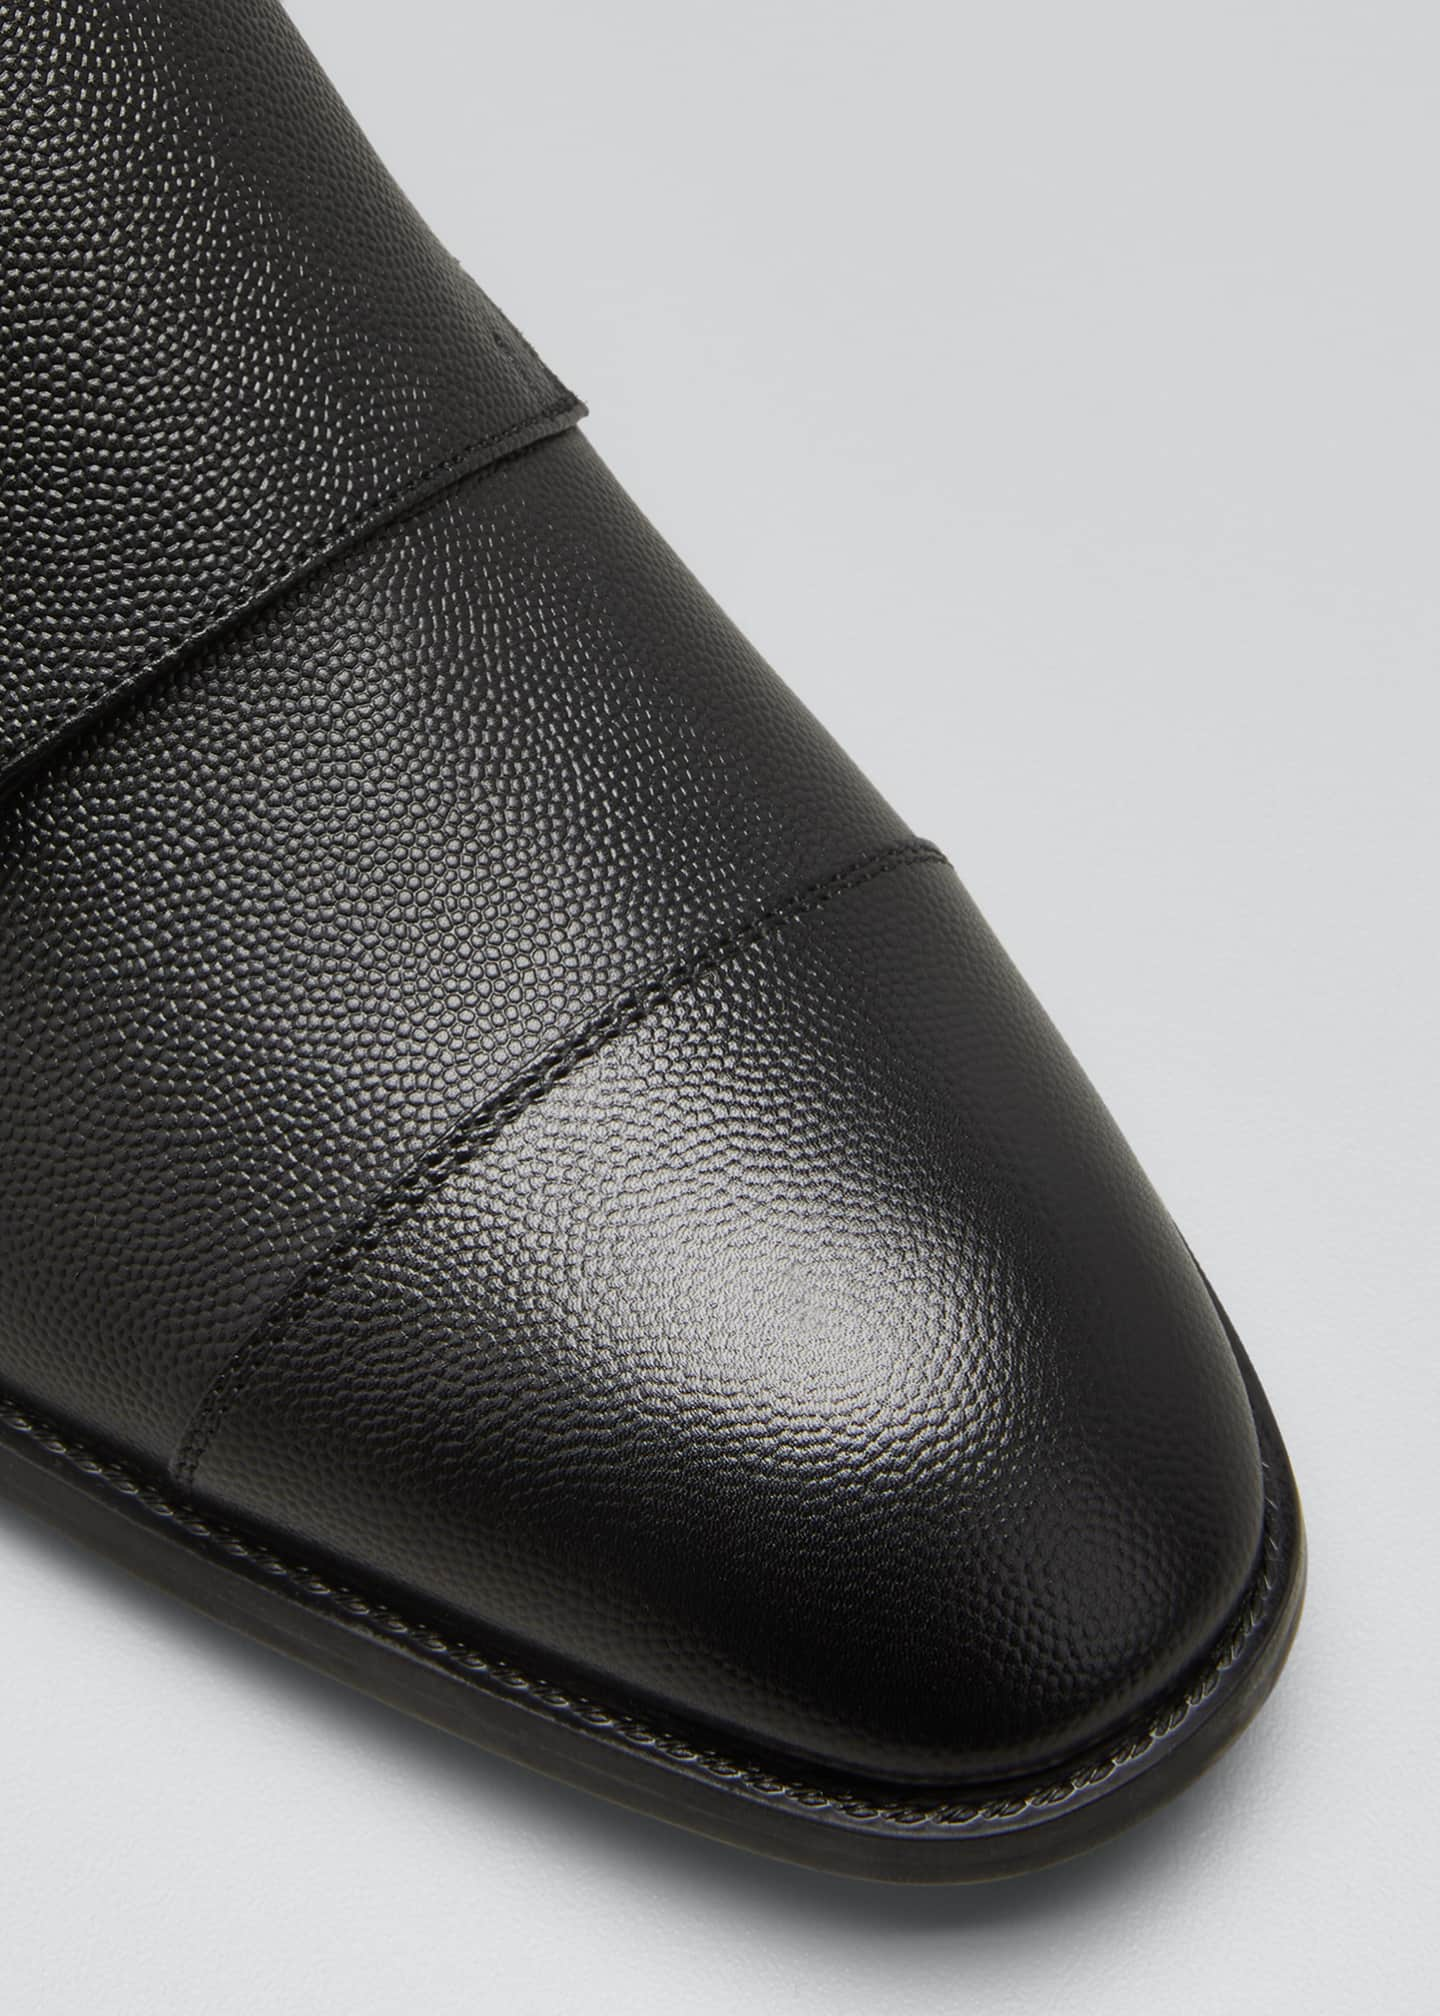 Image 3 of 3: Men's Double-Monk Strap Pebbled Leather Loafers